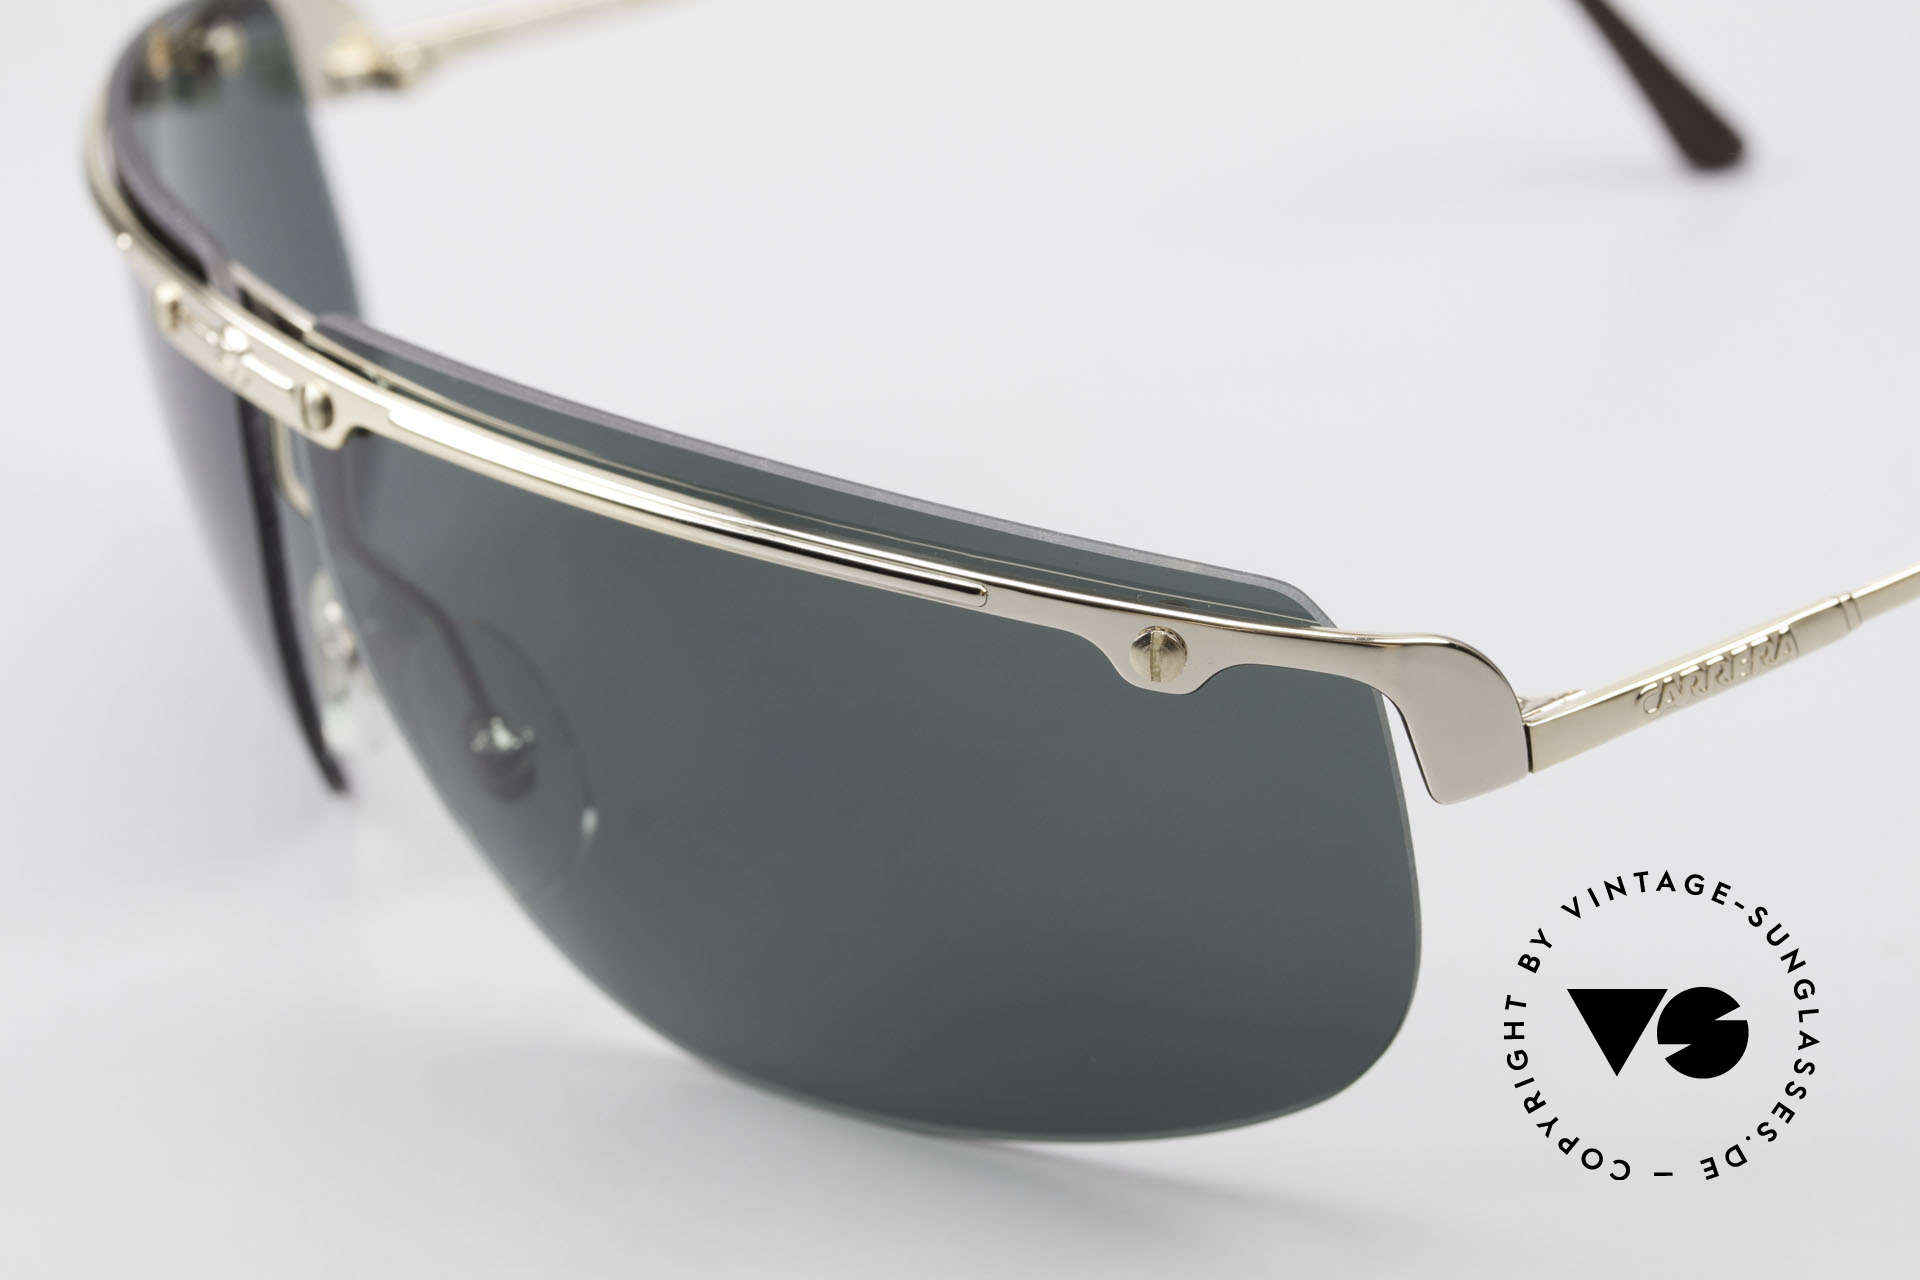 Carrera 5420 90's Wrap Sports Sunglasses, functional shades and a stylish accessory likewise, Made for Men